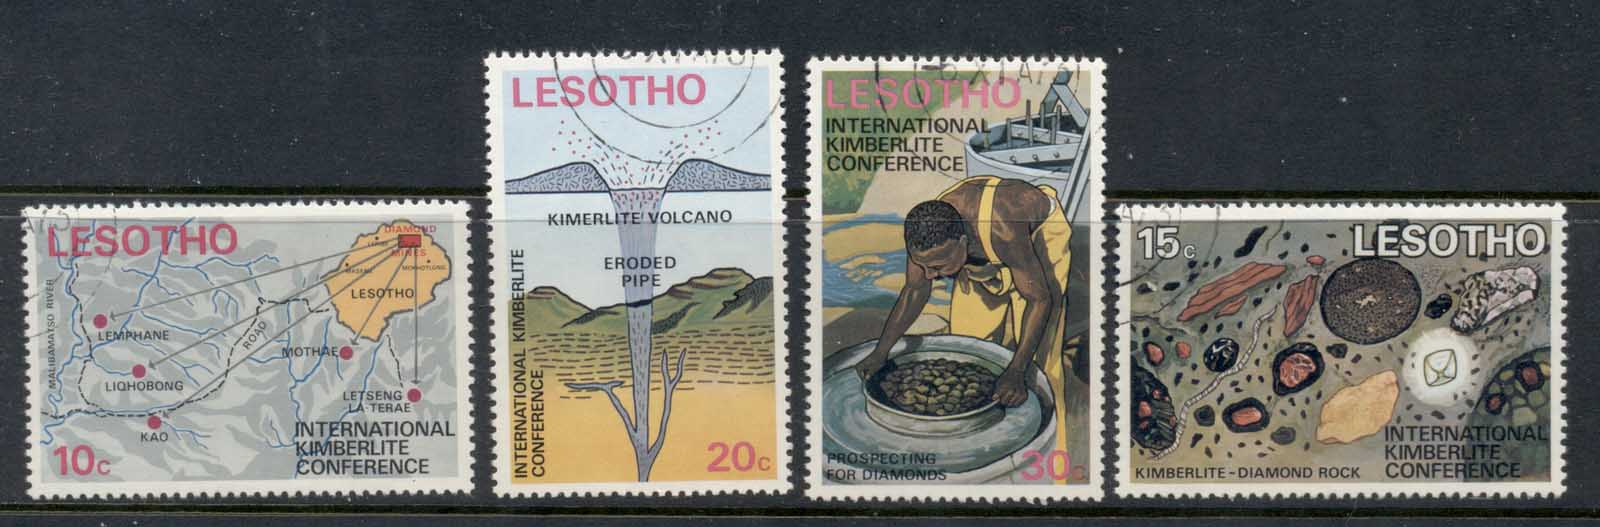 Lesotho 1973 International Kimberlite Conference FU